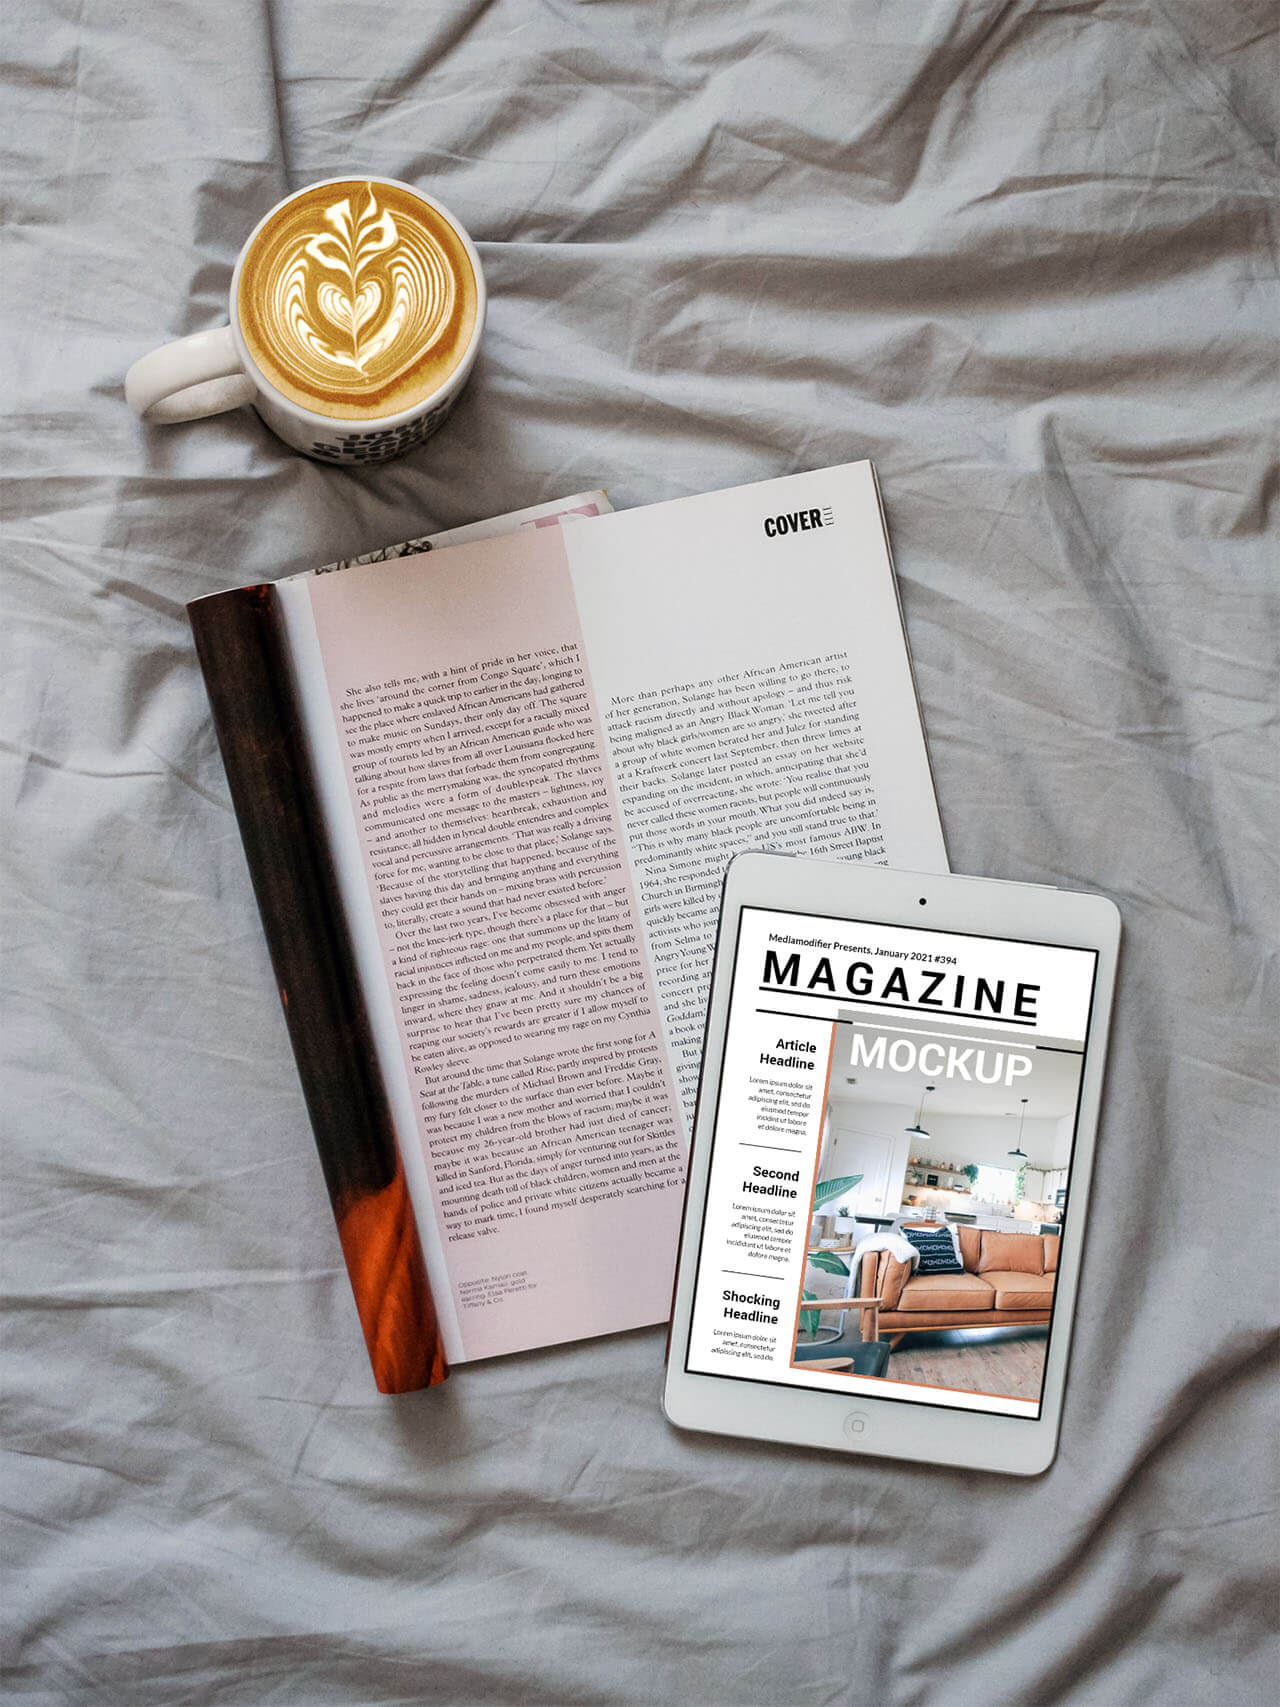 Diseño de revistas: 18-digital-online-magazine-mockup-on-bed